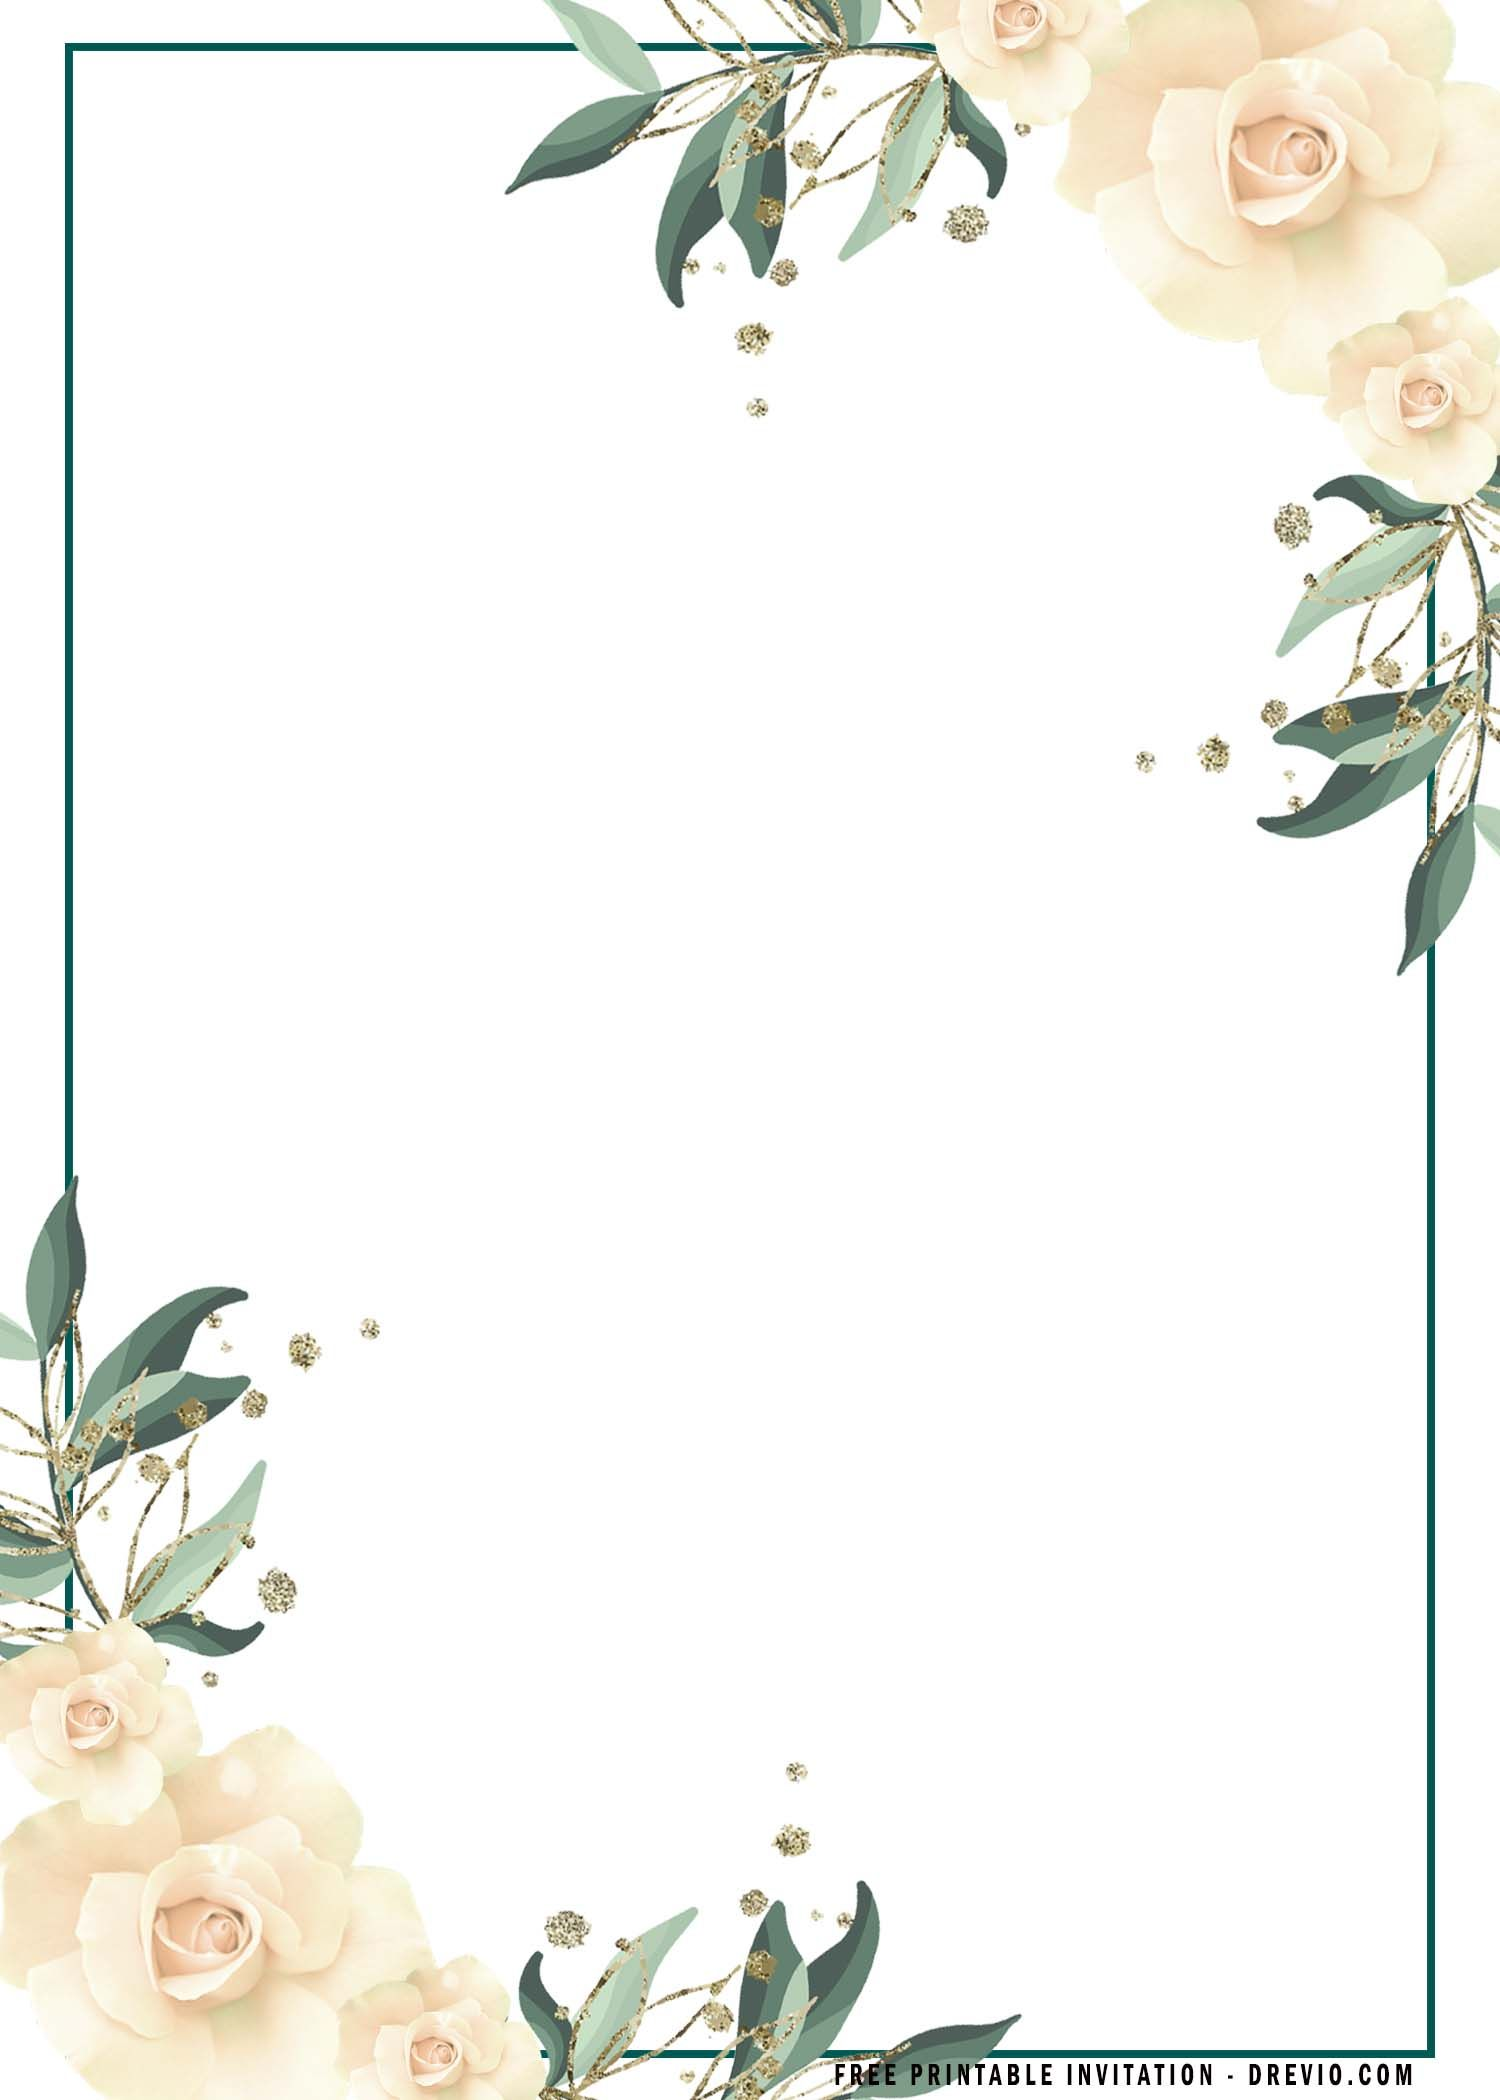 Free Printable Boho Flower Invitation Templates In 2021 Party Invite Template Floral Invitations Template Flower Invitation